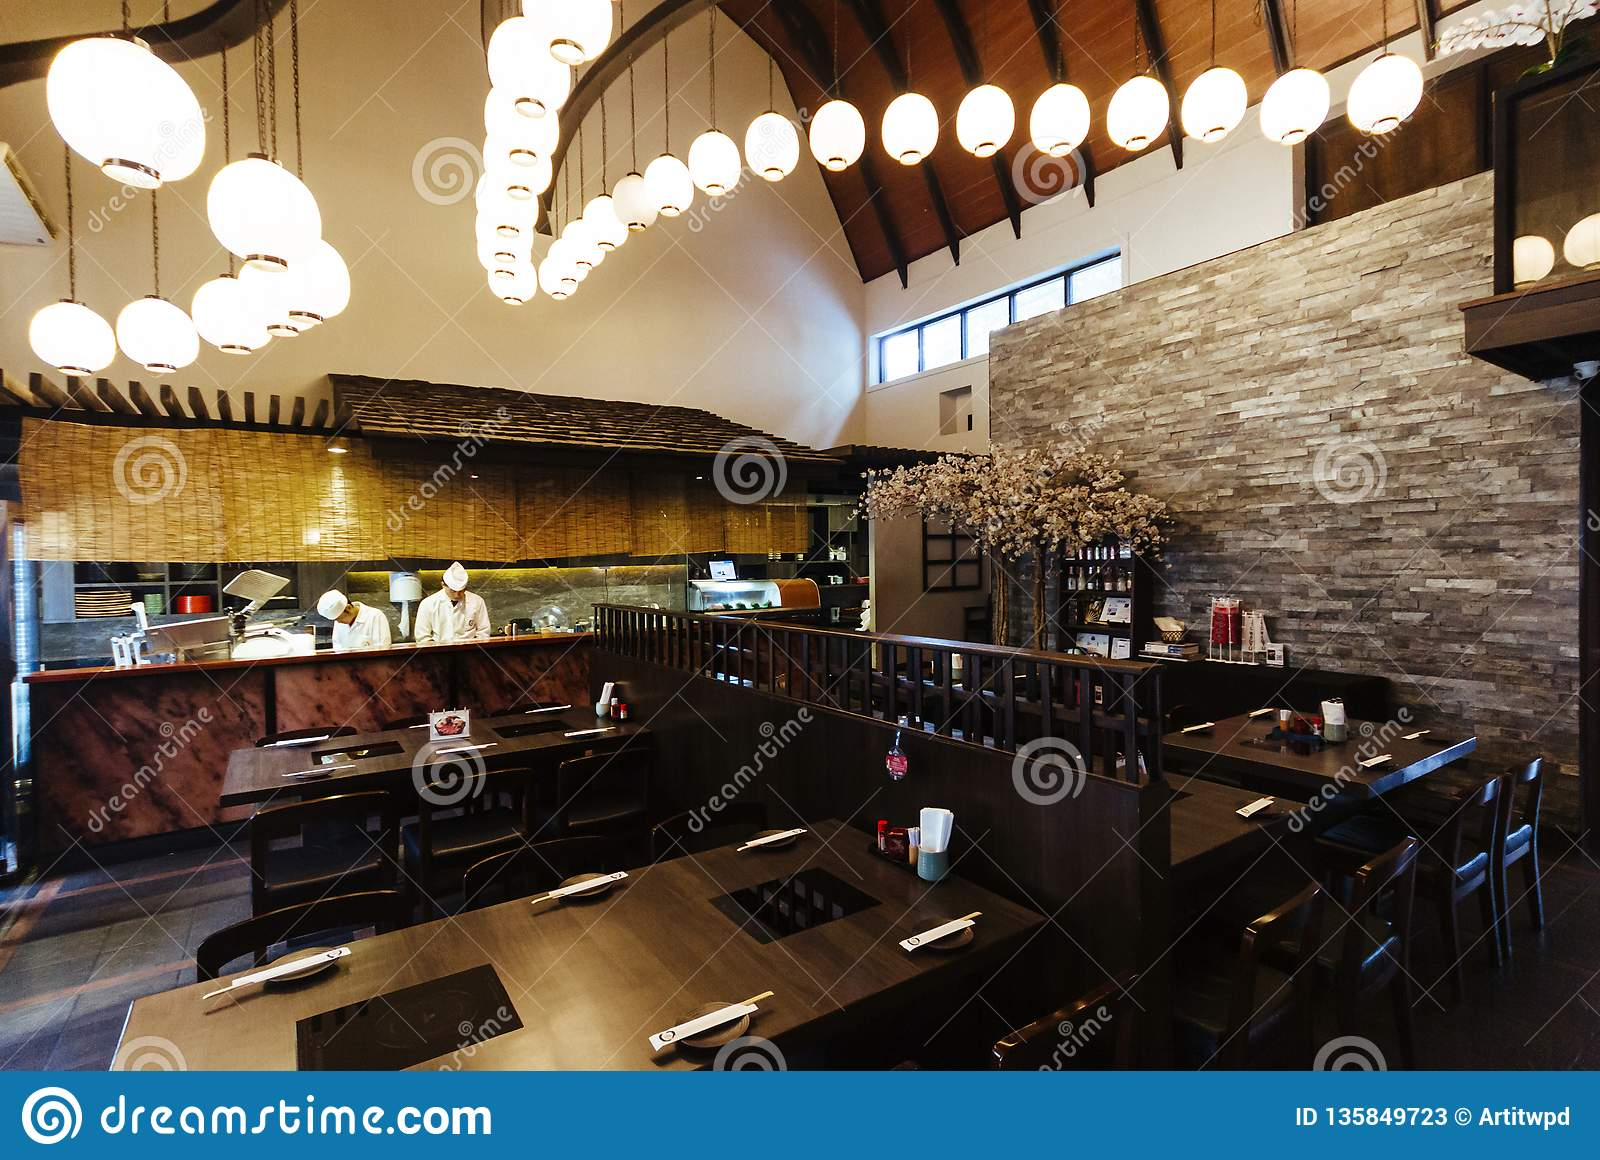 Japanese Restaurant Counter With Chef Decorated With Japanese Lamps On Ceiling Editorial Stock Photo Image Of Dining Lifestyle 135849723